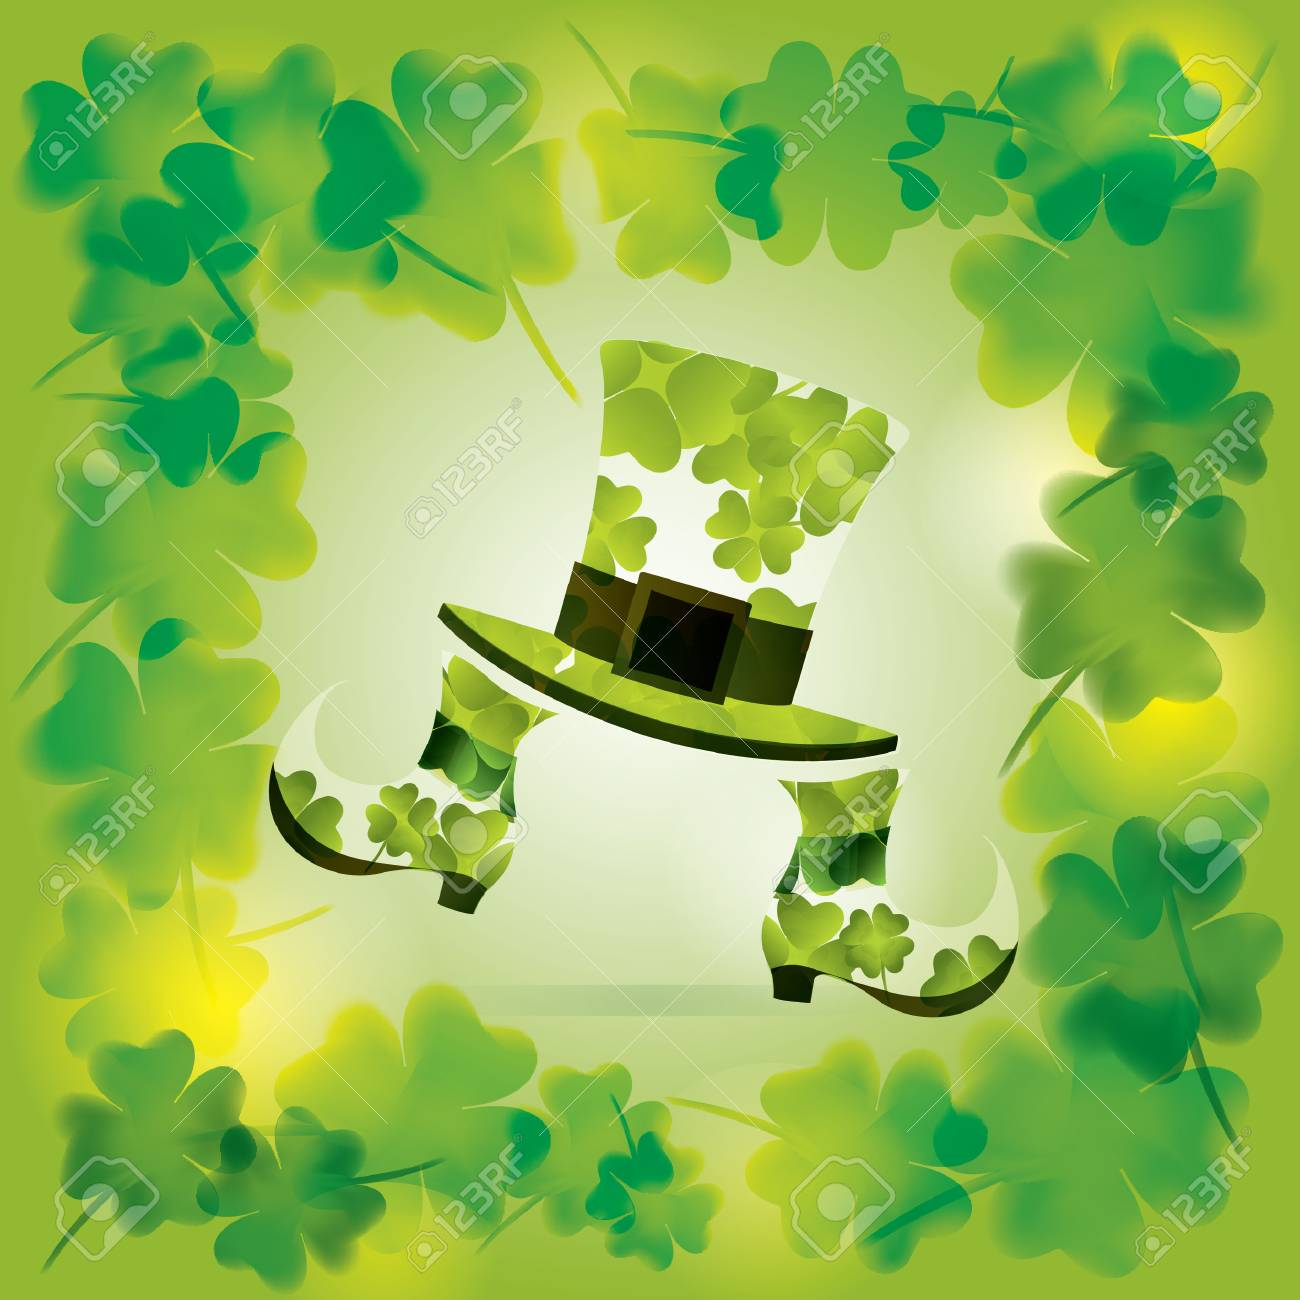 St Patrick S Day Wallpaper Royalty Free Cliparts Vectors And